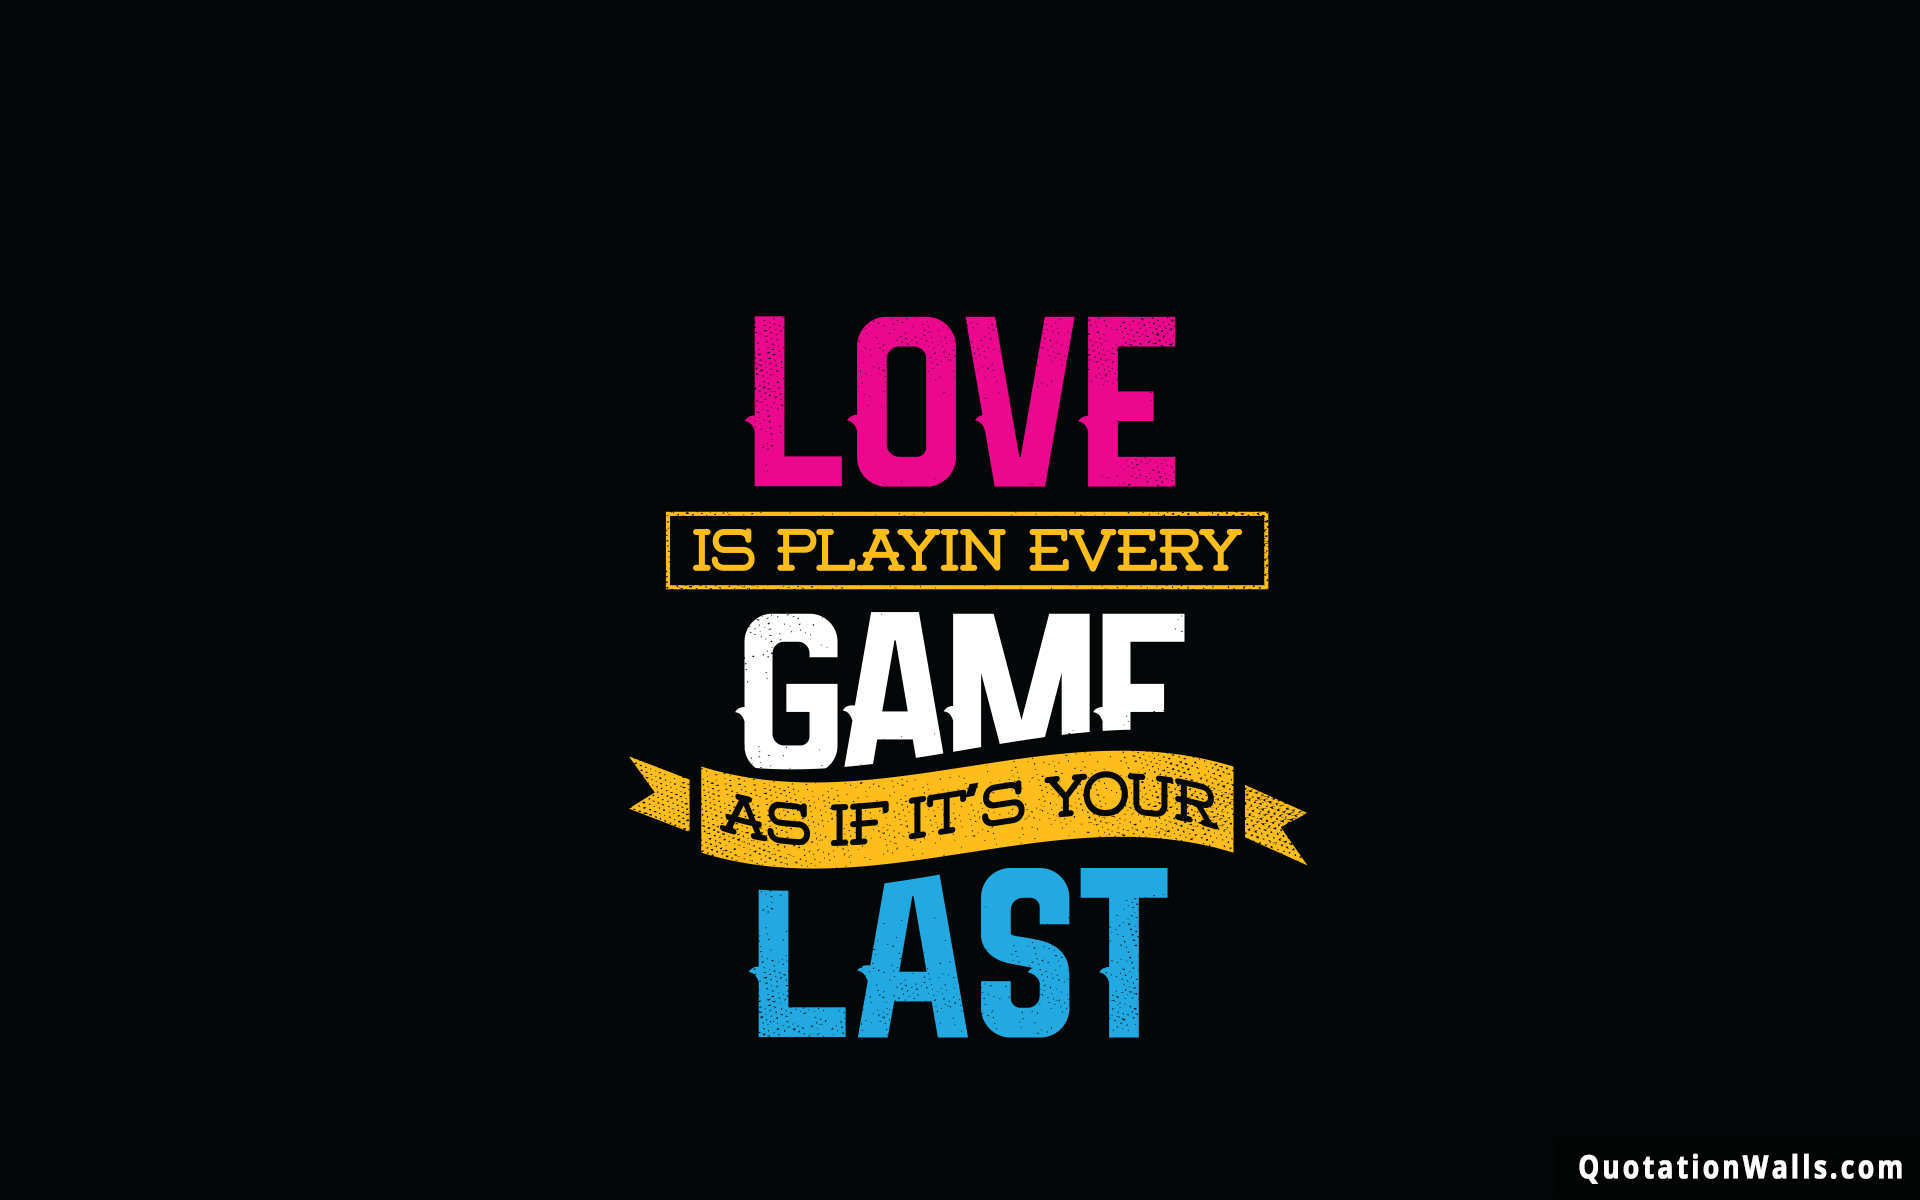 Love Is Playing Games Motivational Wallpaper For Desktop